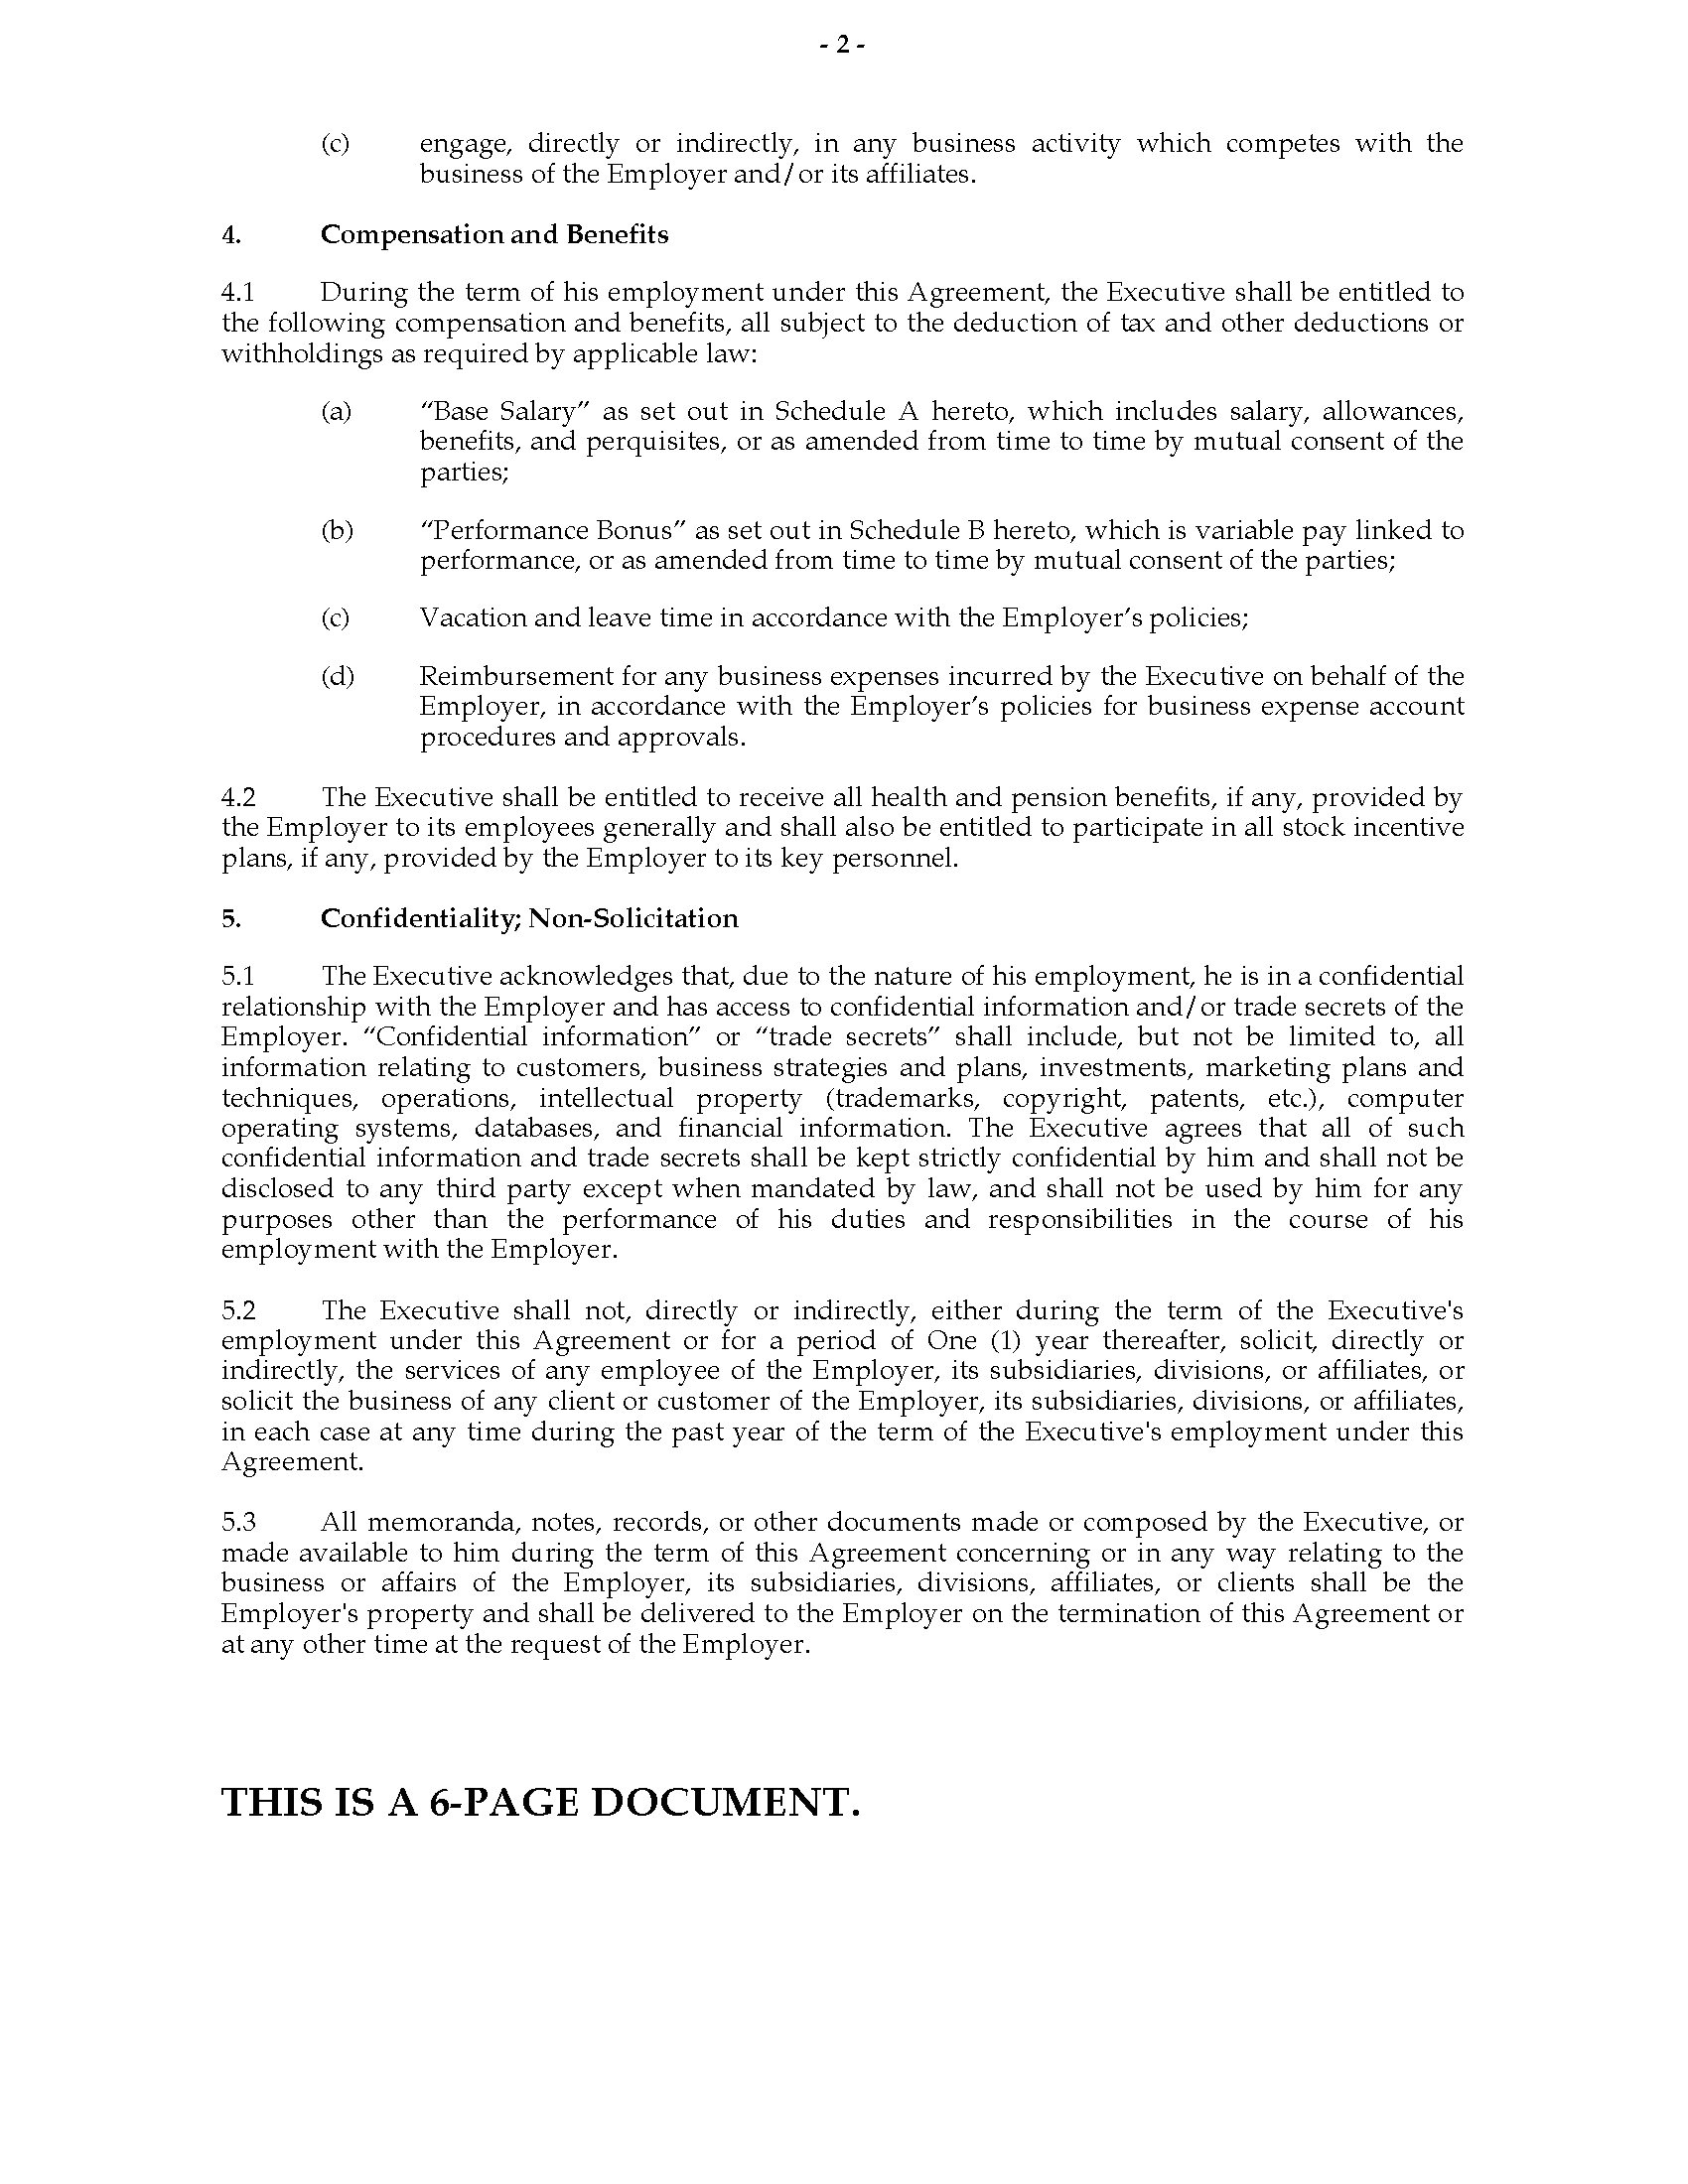 Employment Contract Template India India Employment Agreement for Executive Position Legal